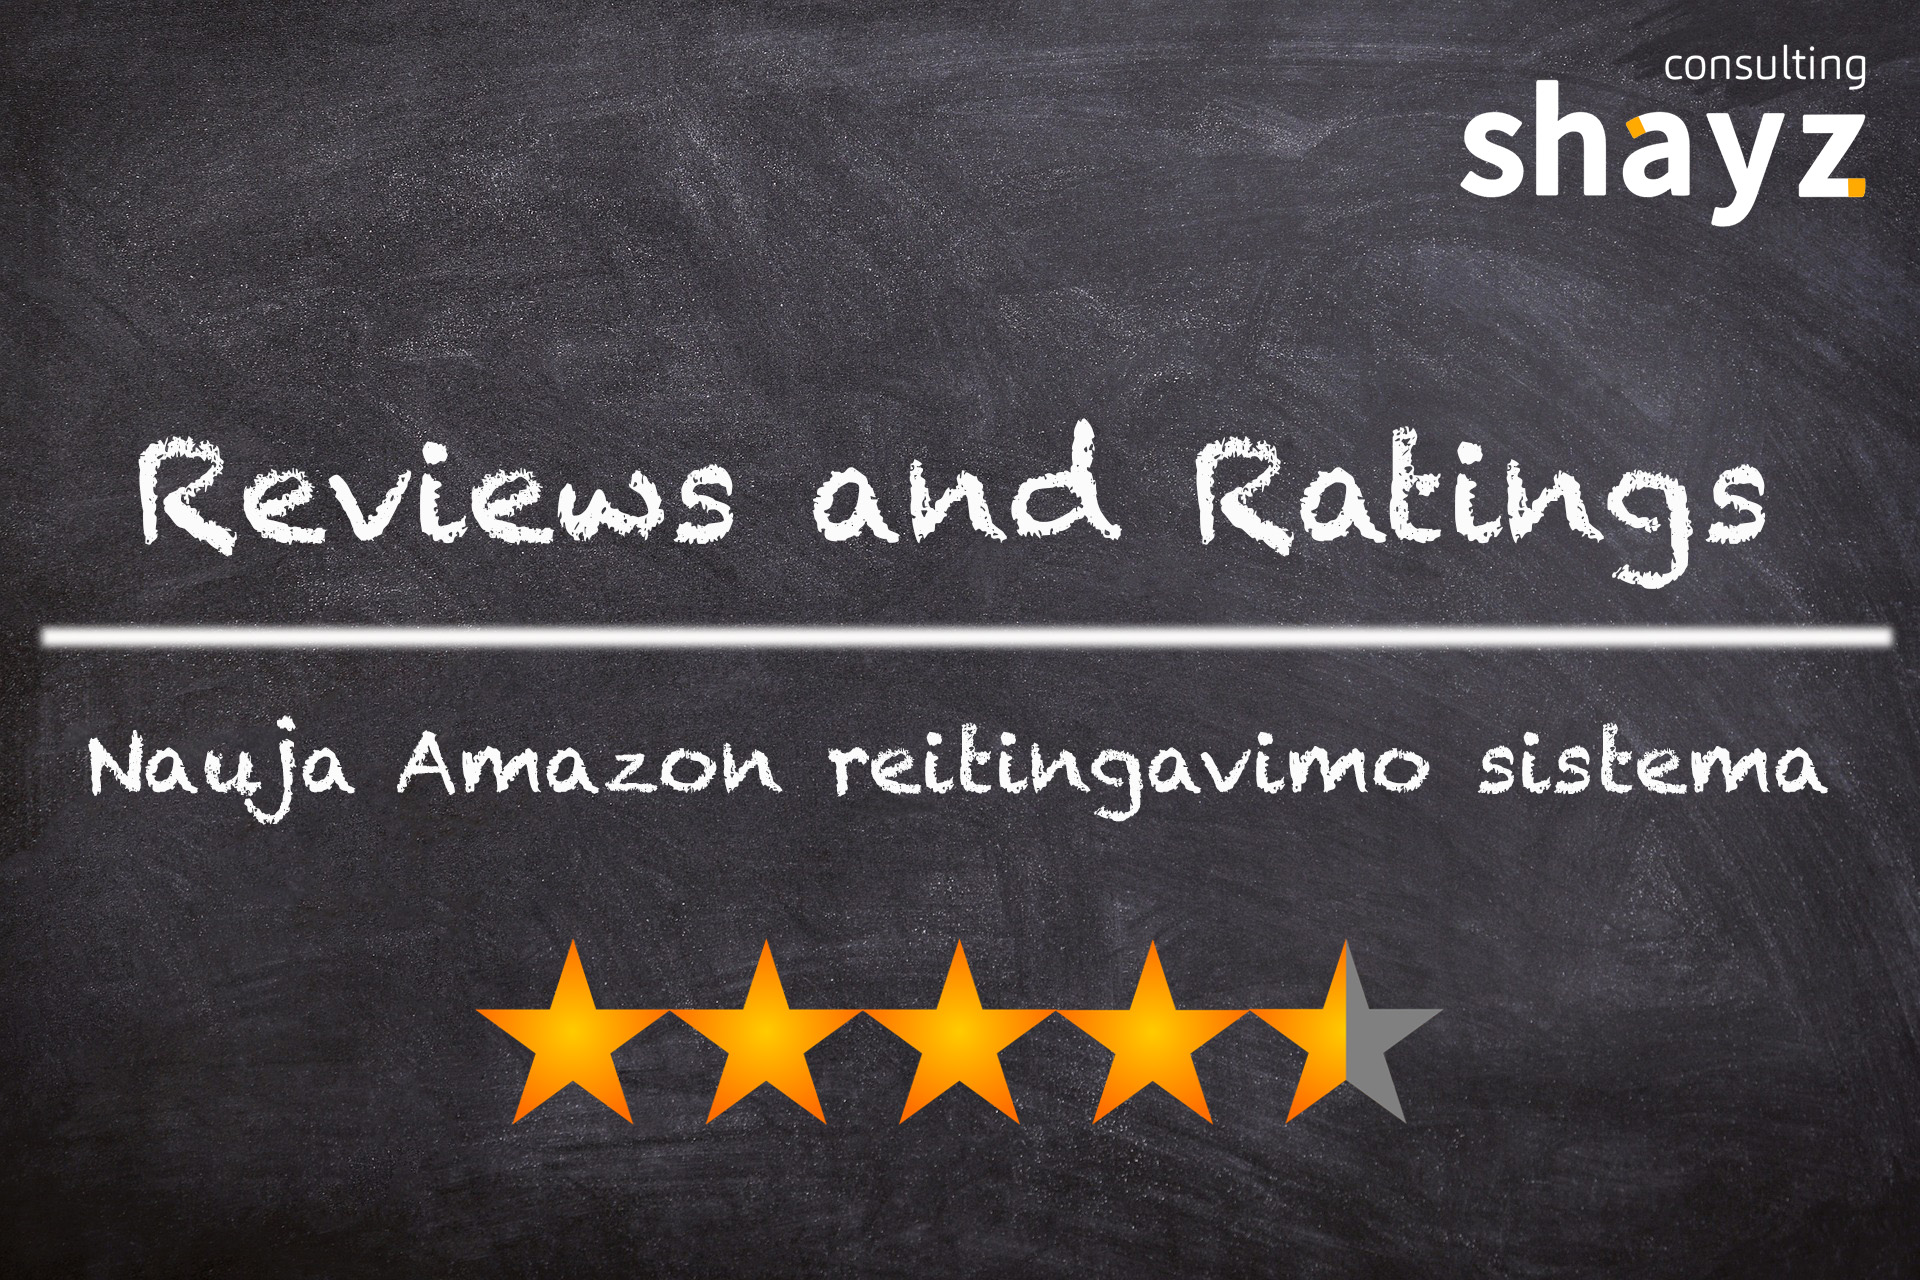 Nauja Amazon reviews sistema